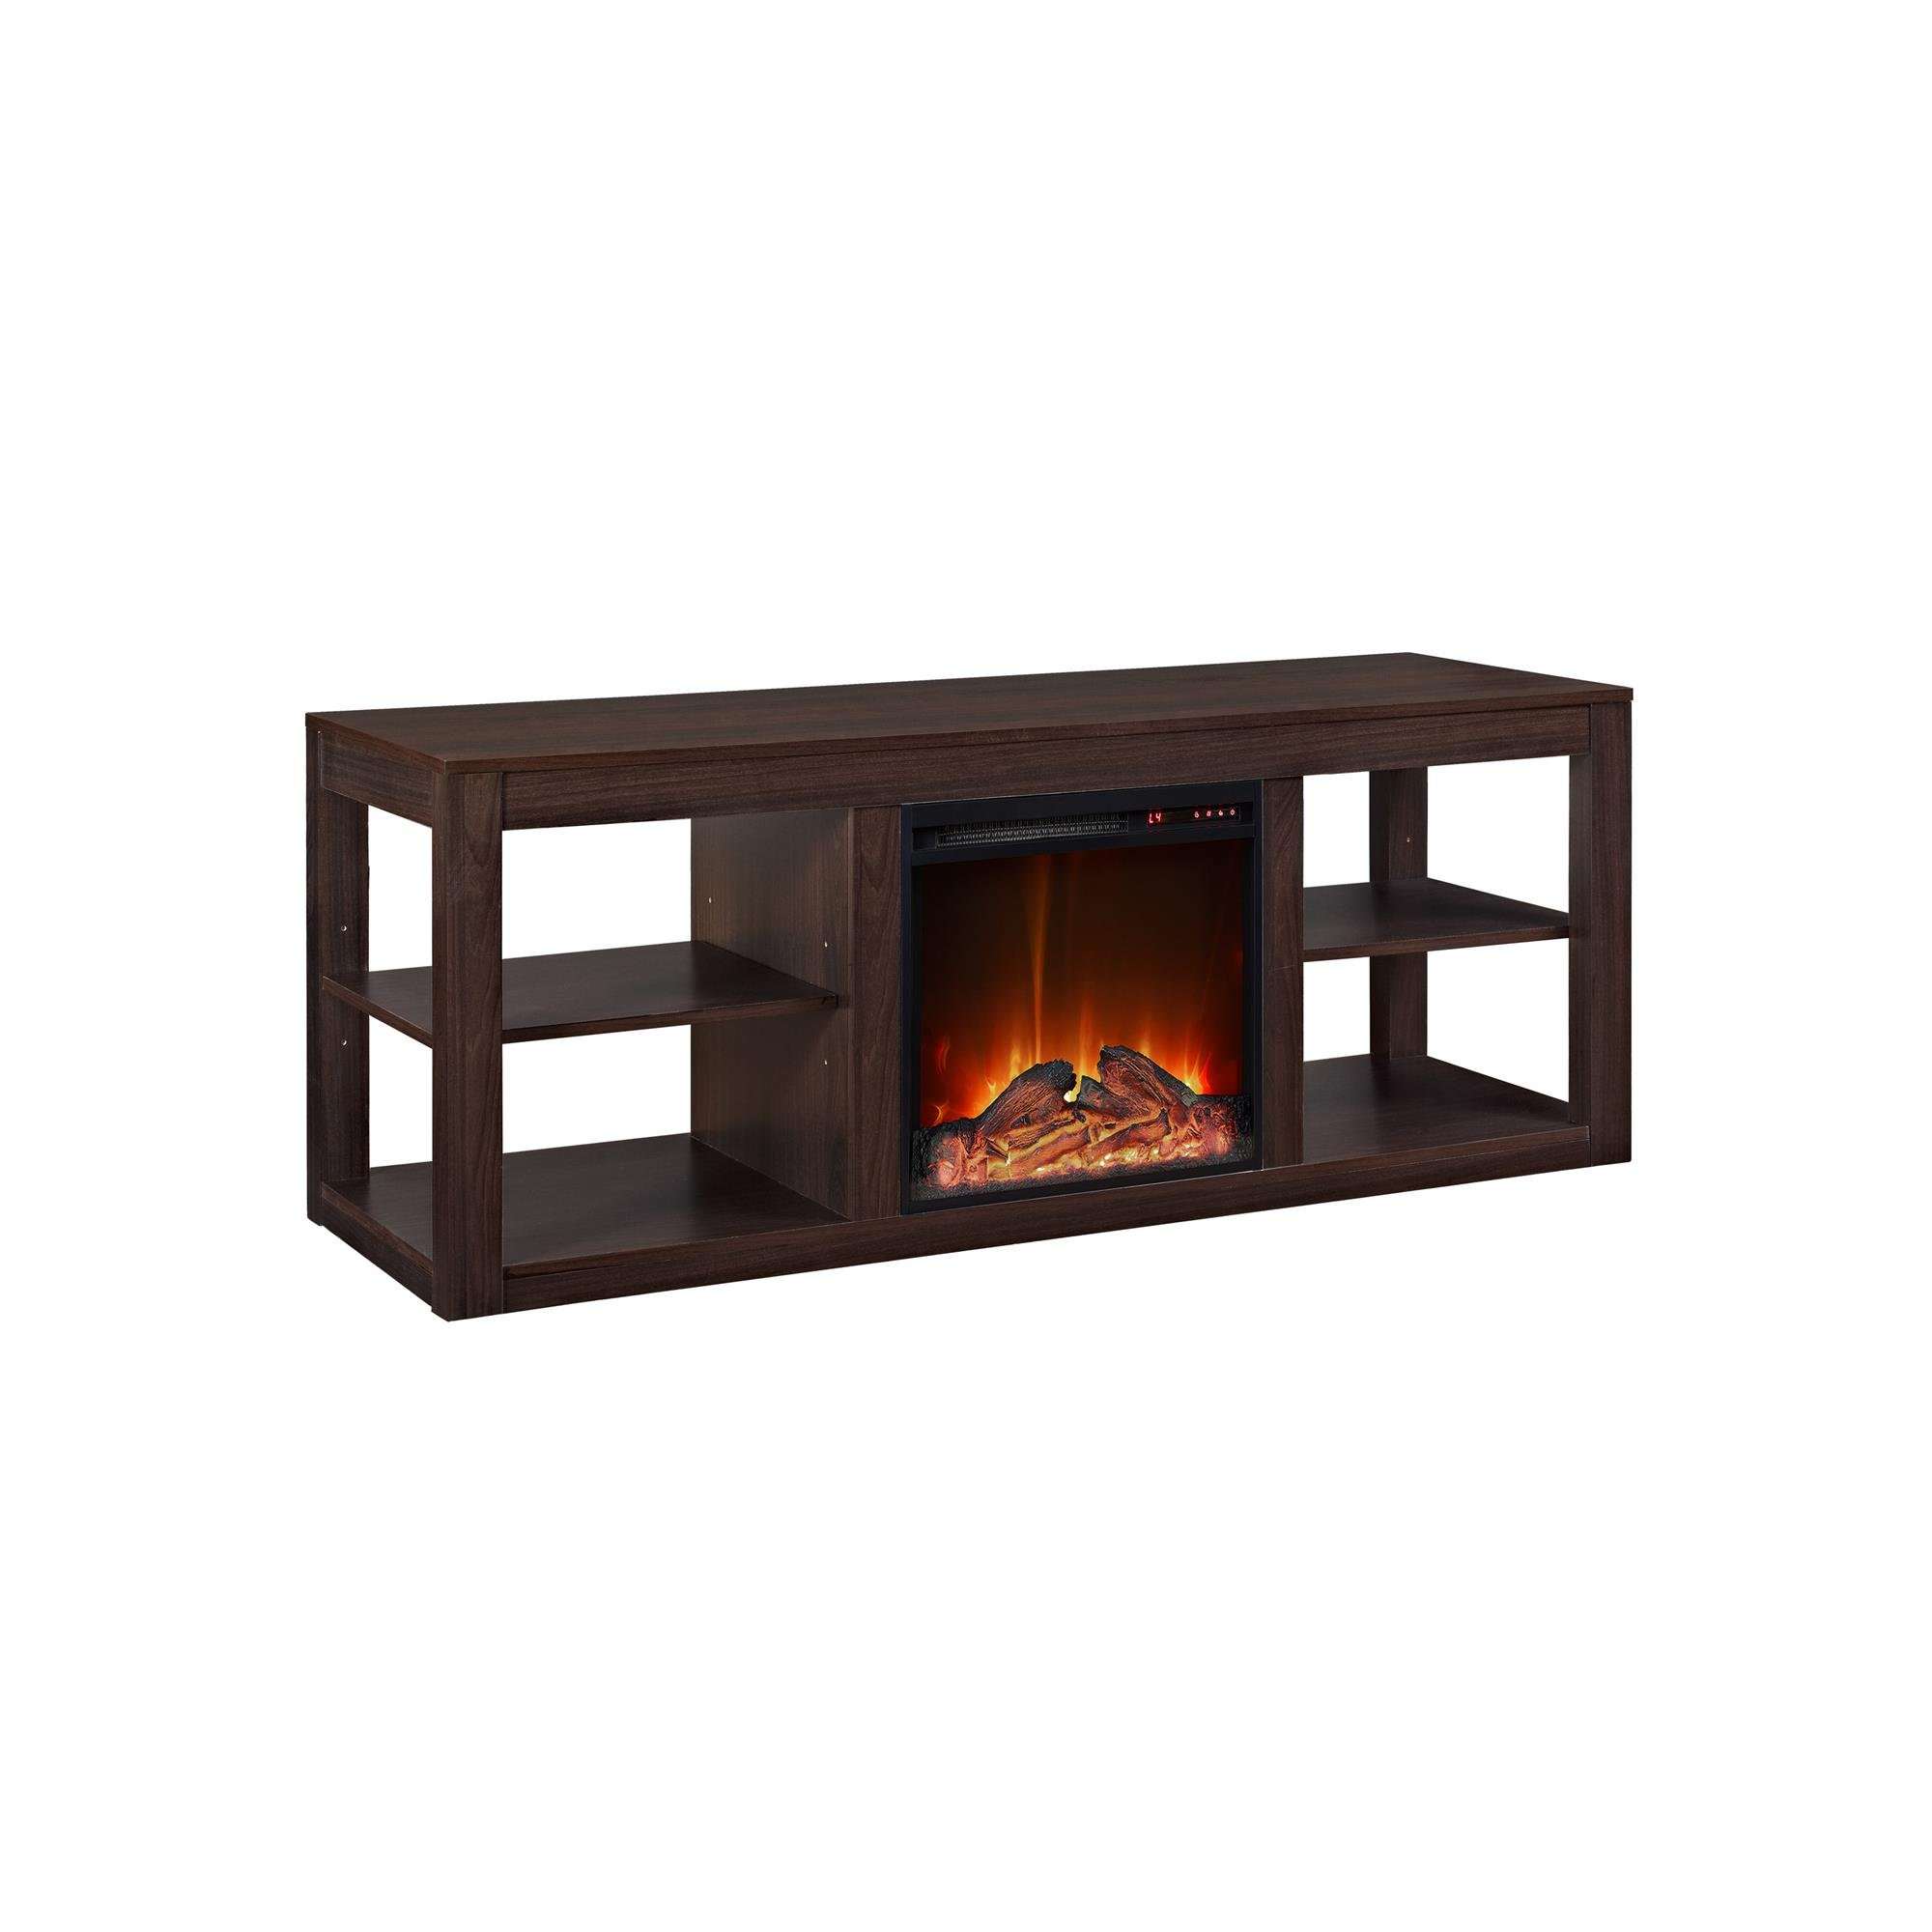 Ameriwood Home Parsons Console Fireplace for TVs up to 65'', Espresso by Ameriwood Home